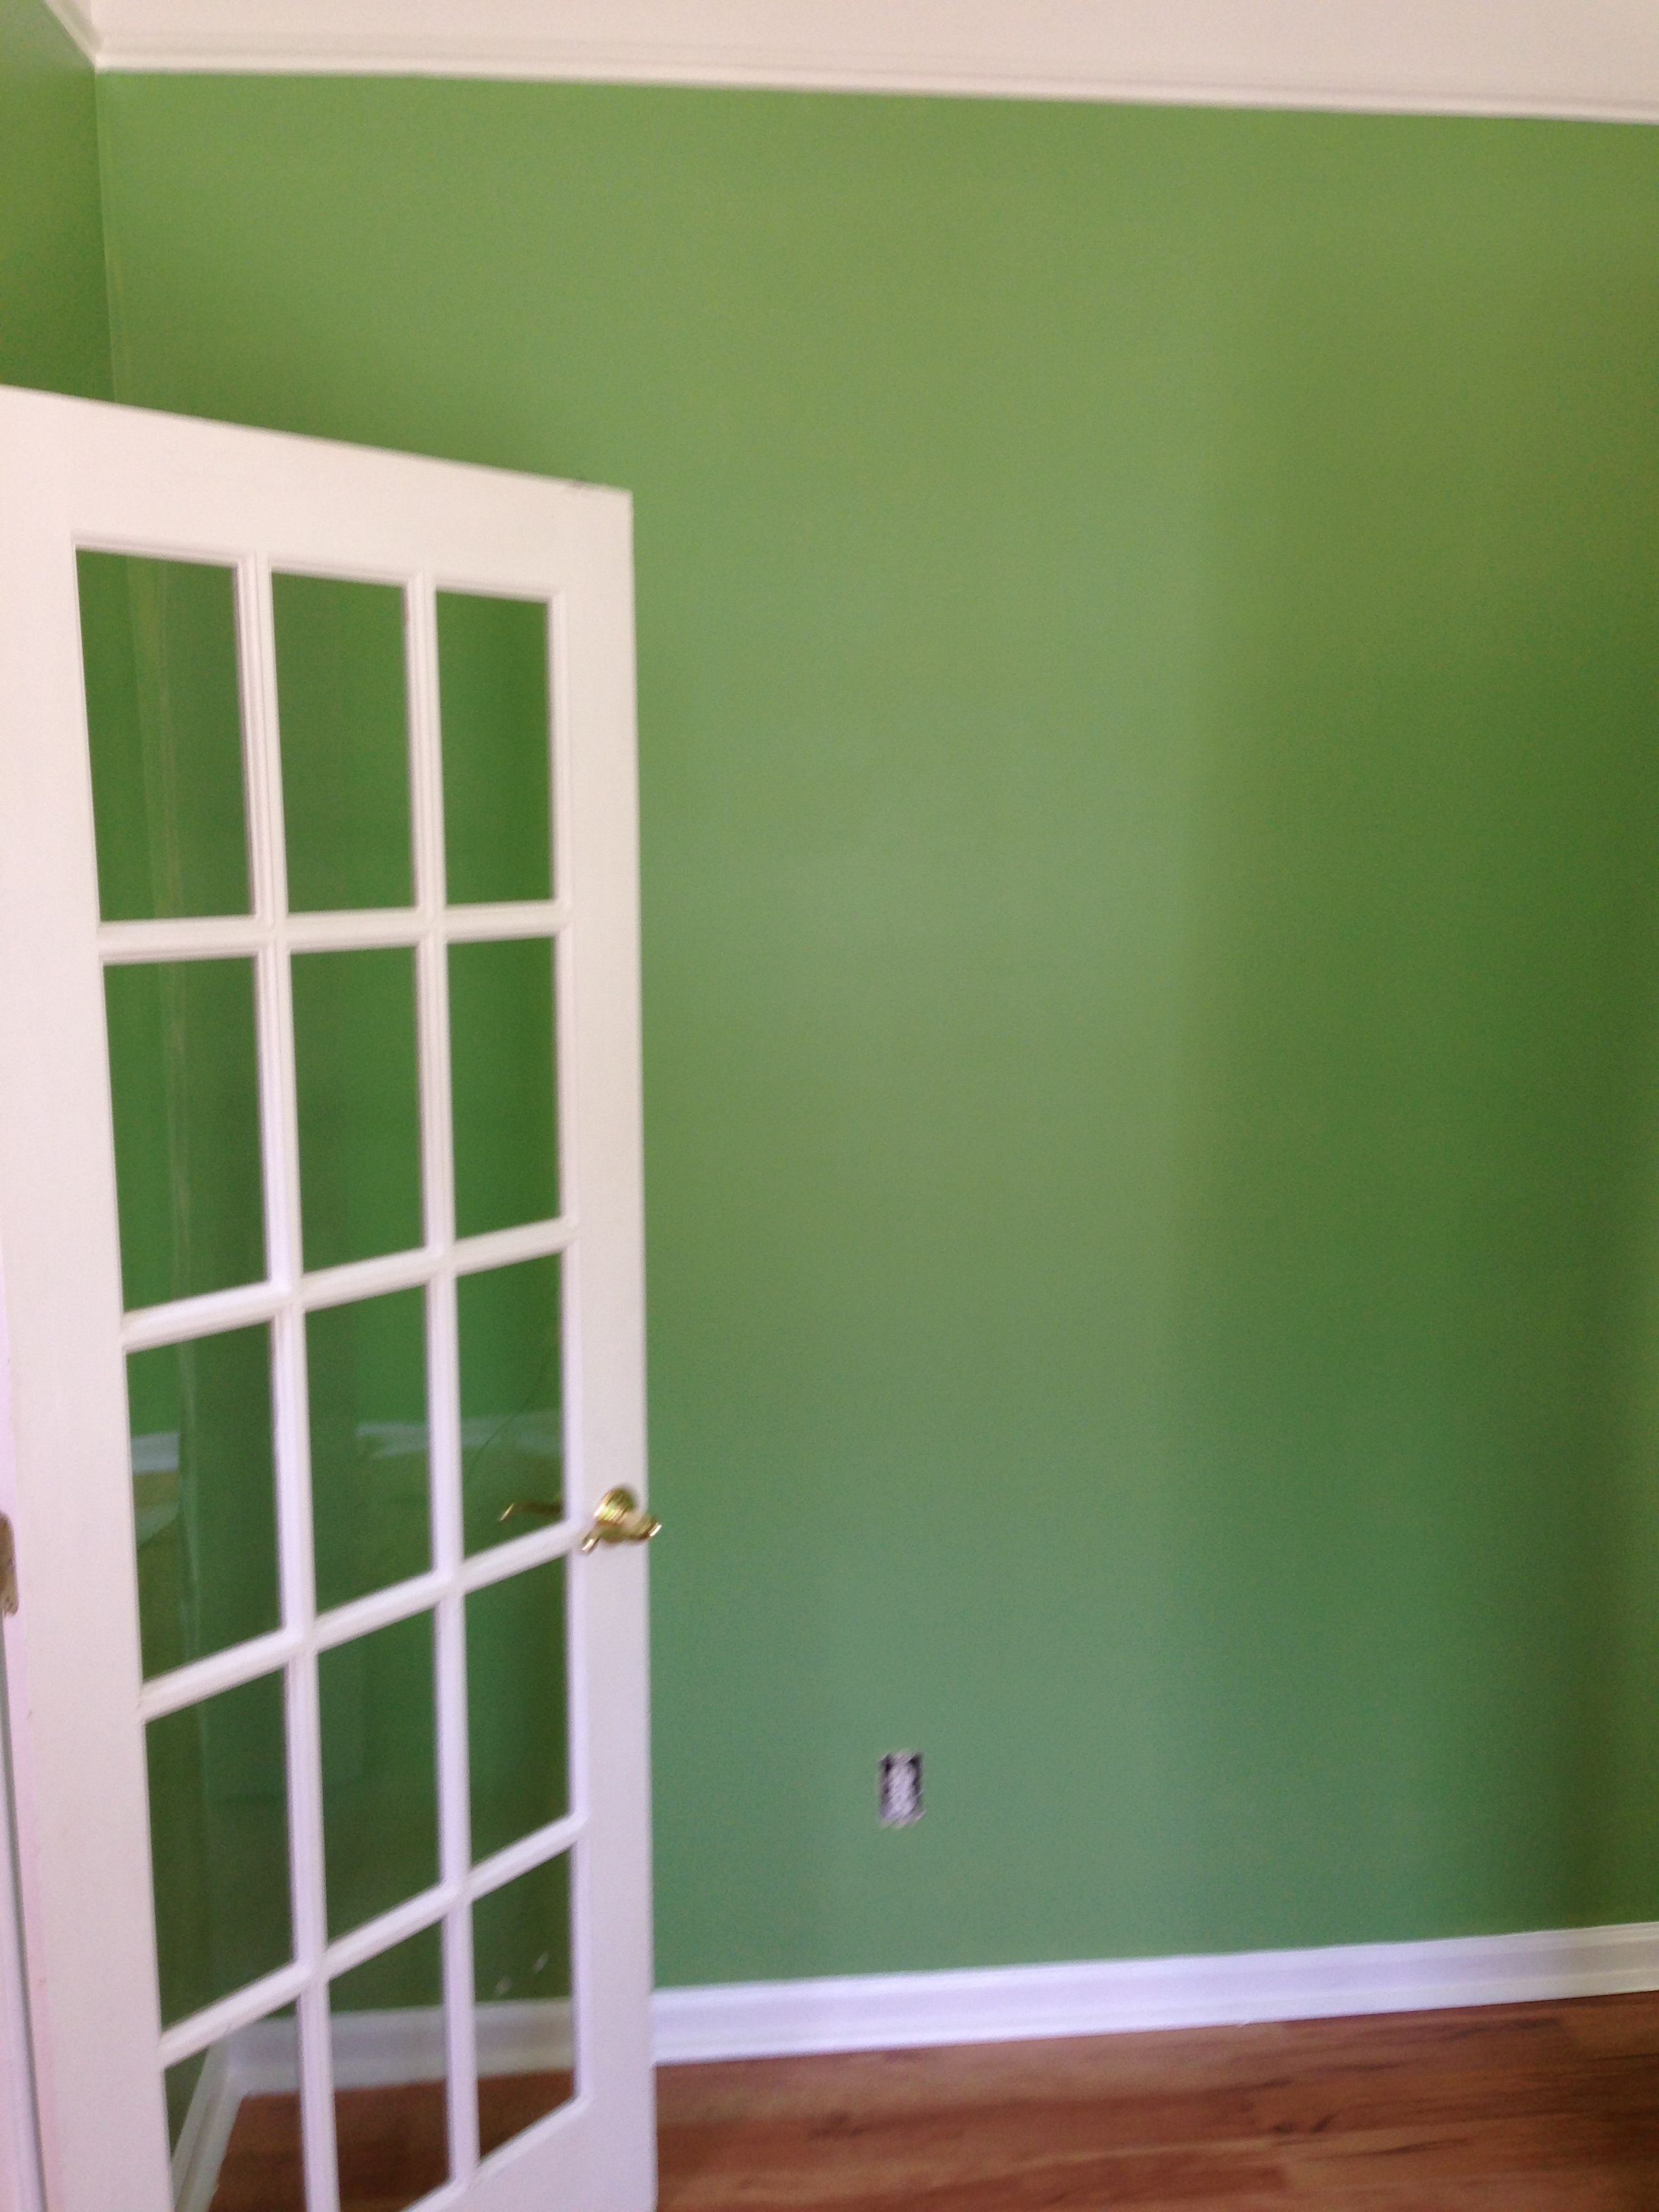 Sherwin Williams Organic Green Color Matched To Olympic One Paint And Primer From Lowes